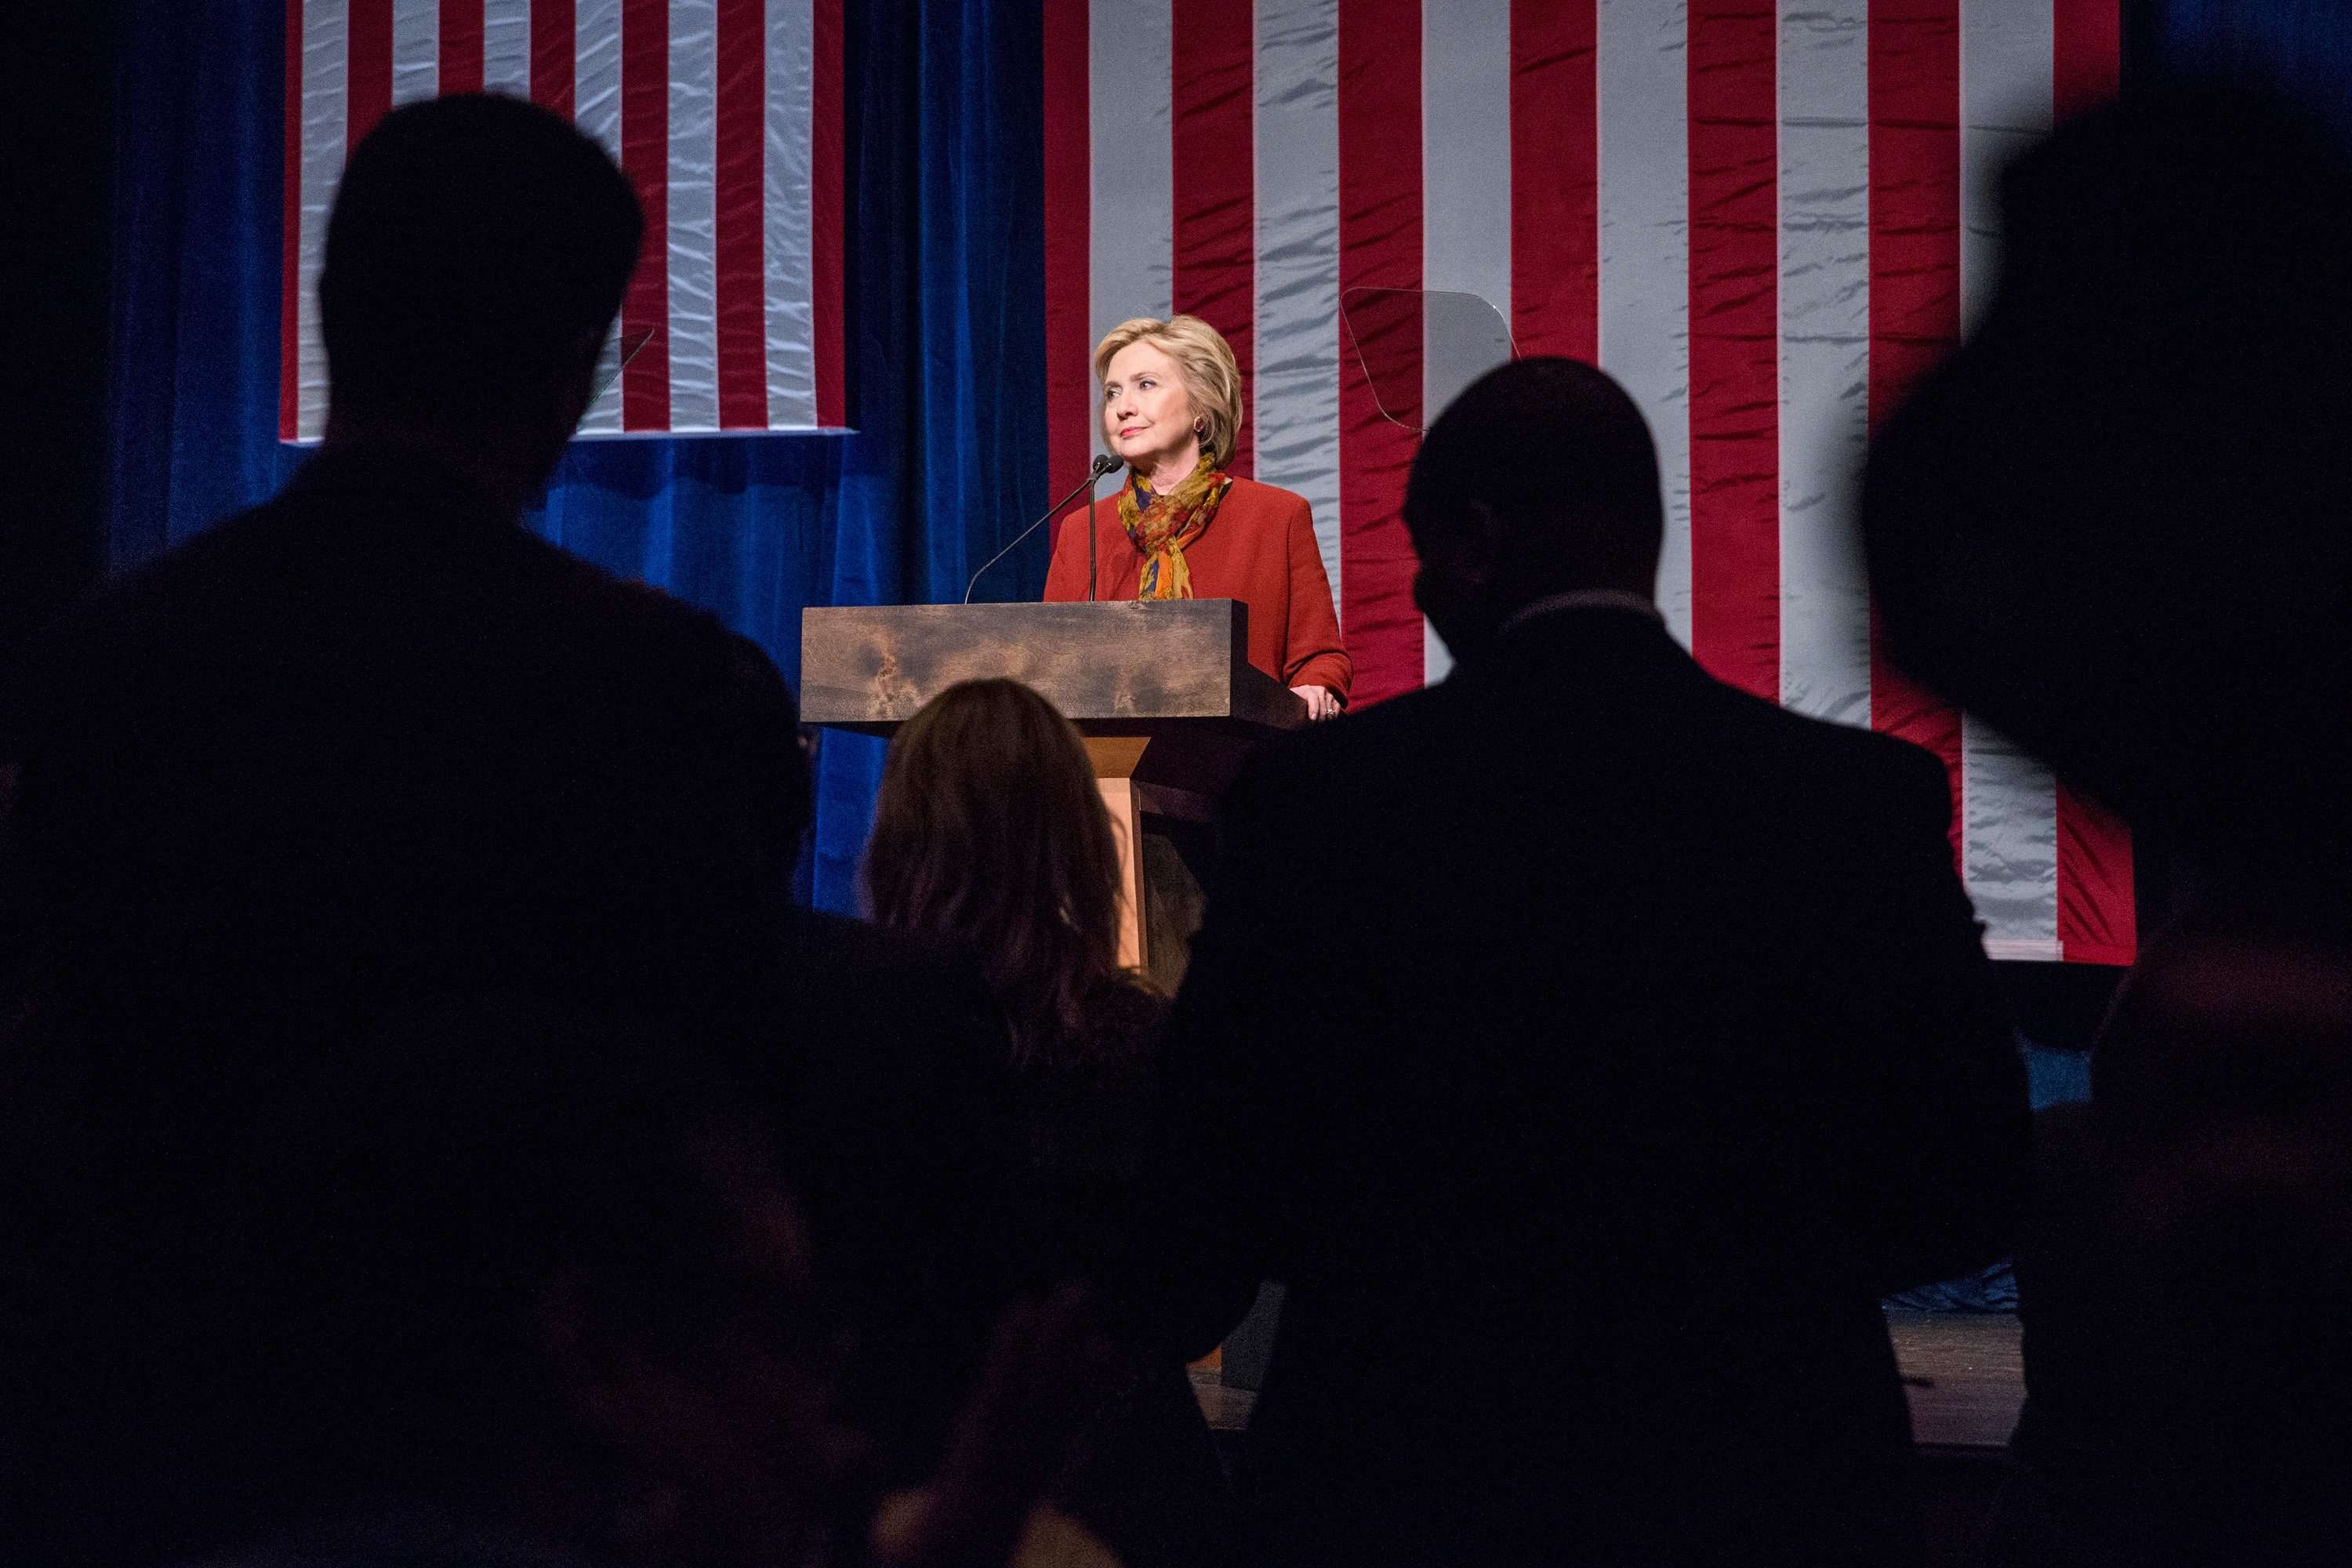 Hillary Clinton gives a speech at the Schomburg Center for Research in Black Culture on Feb. 16, 2016, in New York City